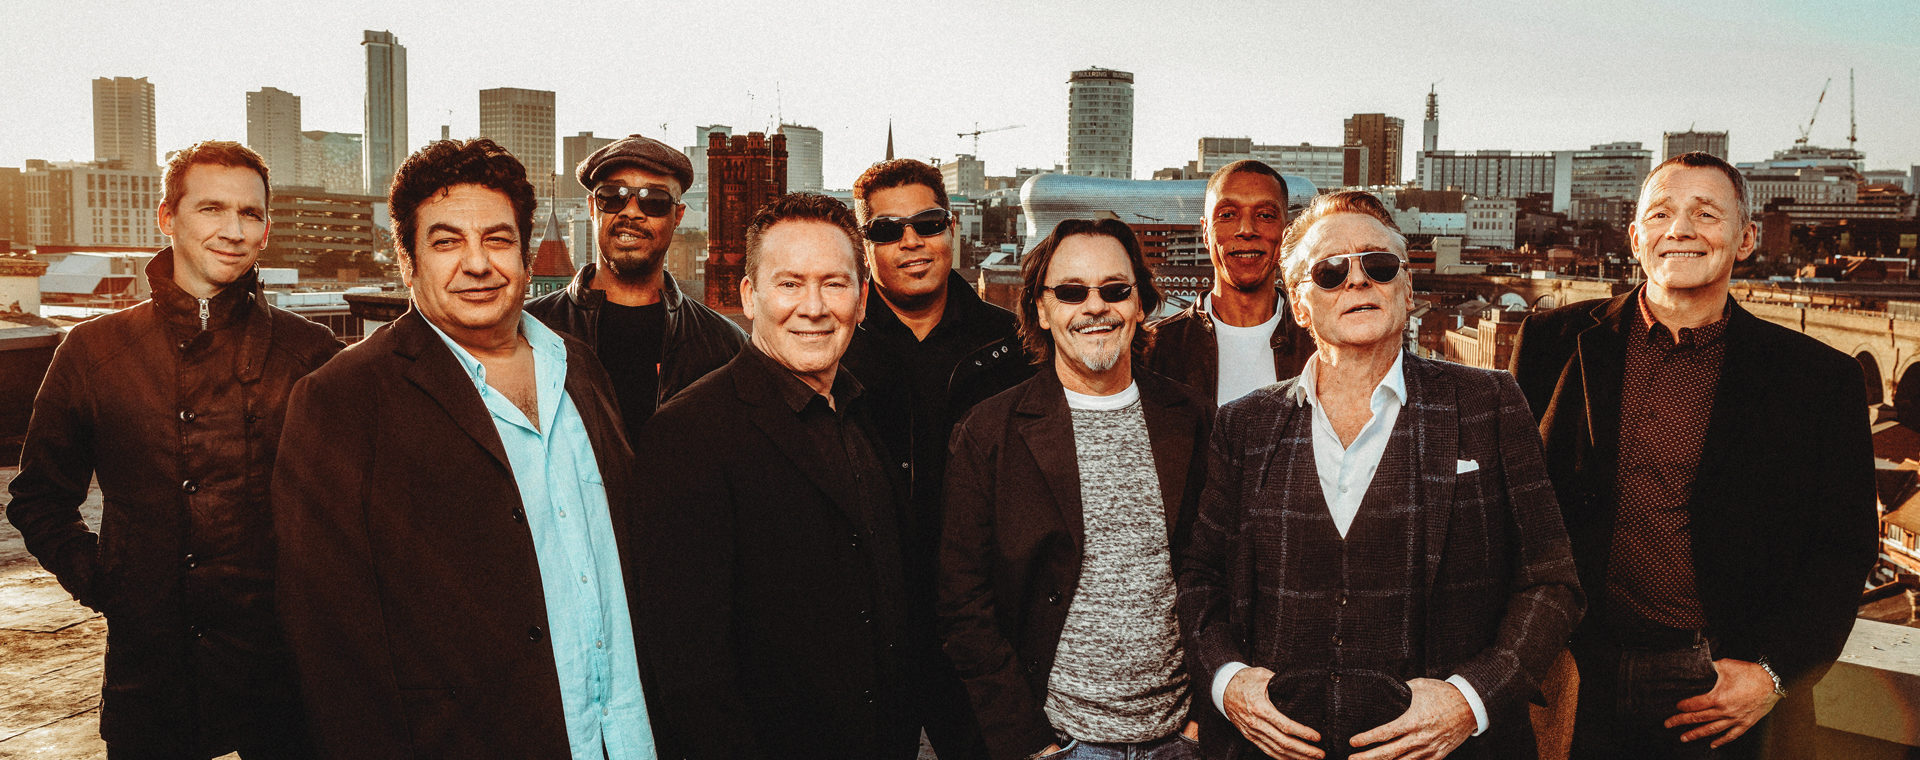 LATEST ISSUE <br><b>UB40</b></br>